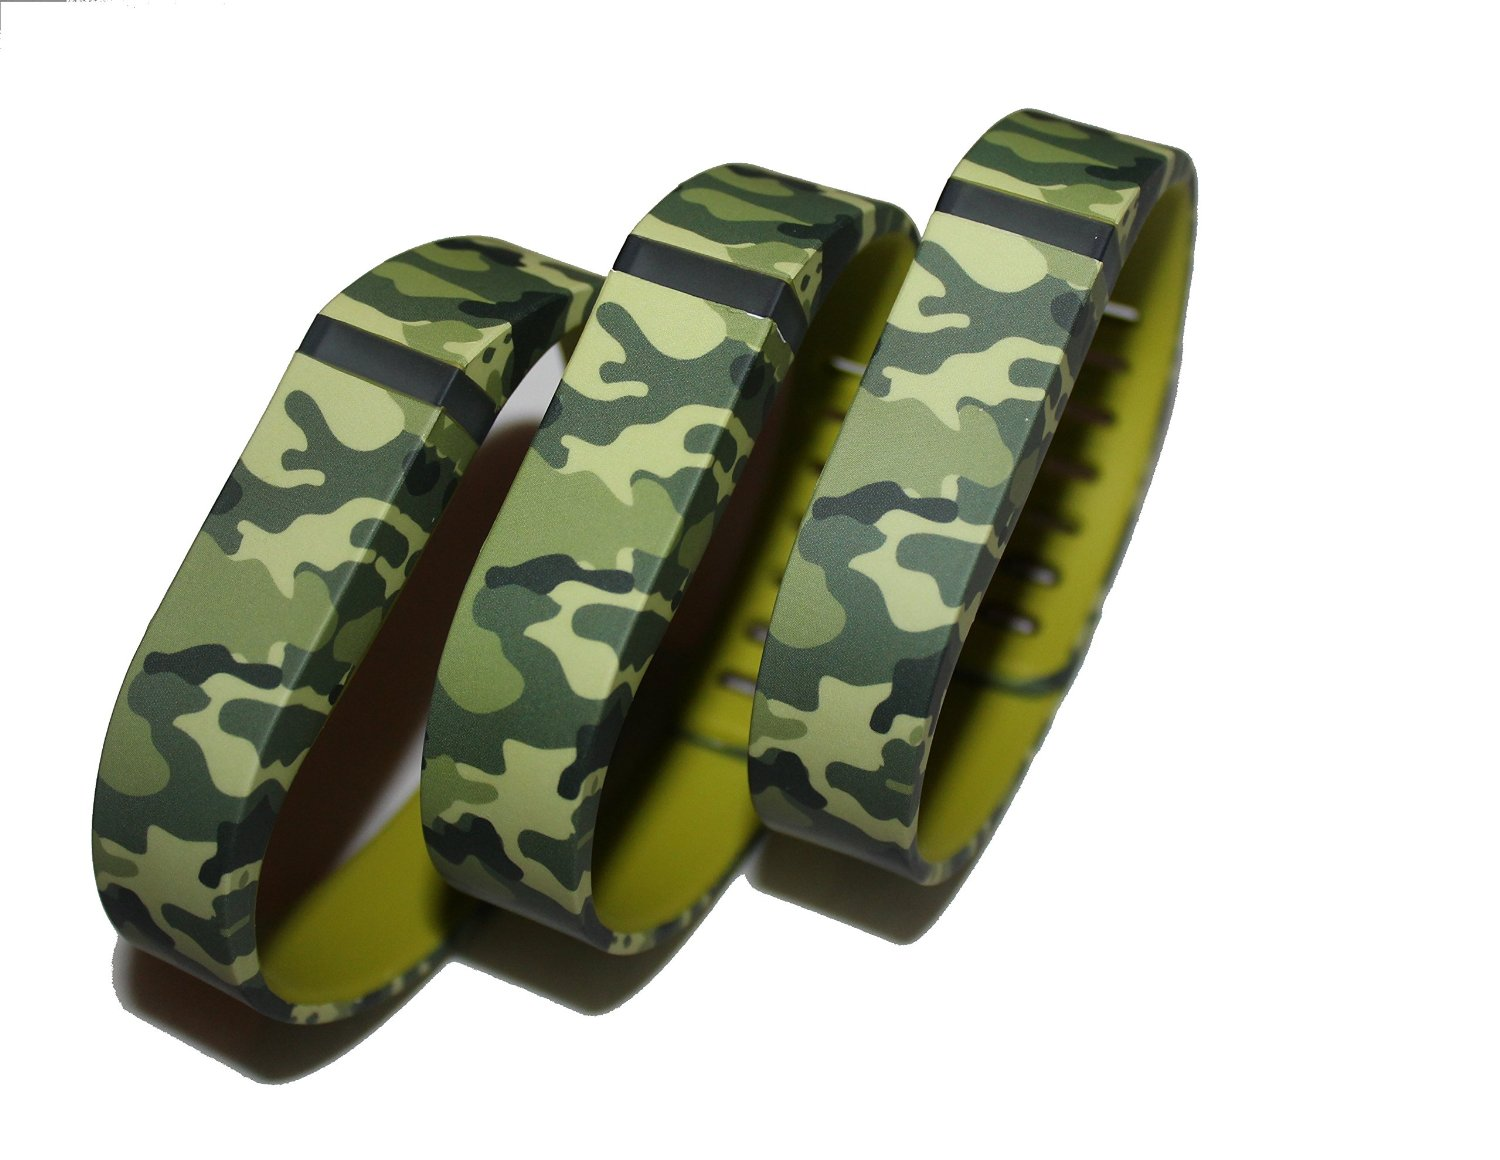 SUPTG Large 3pcs Camo Camouflage Army Wrist Bands For Fitbit Flex Bracelet (With Clasp , No Tracker) Replacement Bands Wireless Fitness Accessories Tracking Exercise Sport Activity